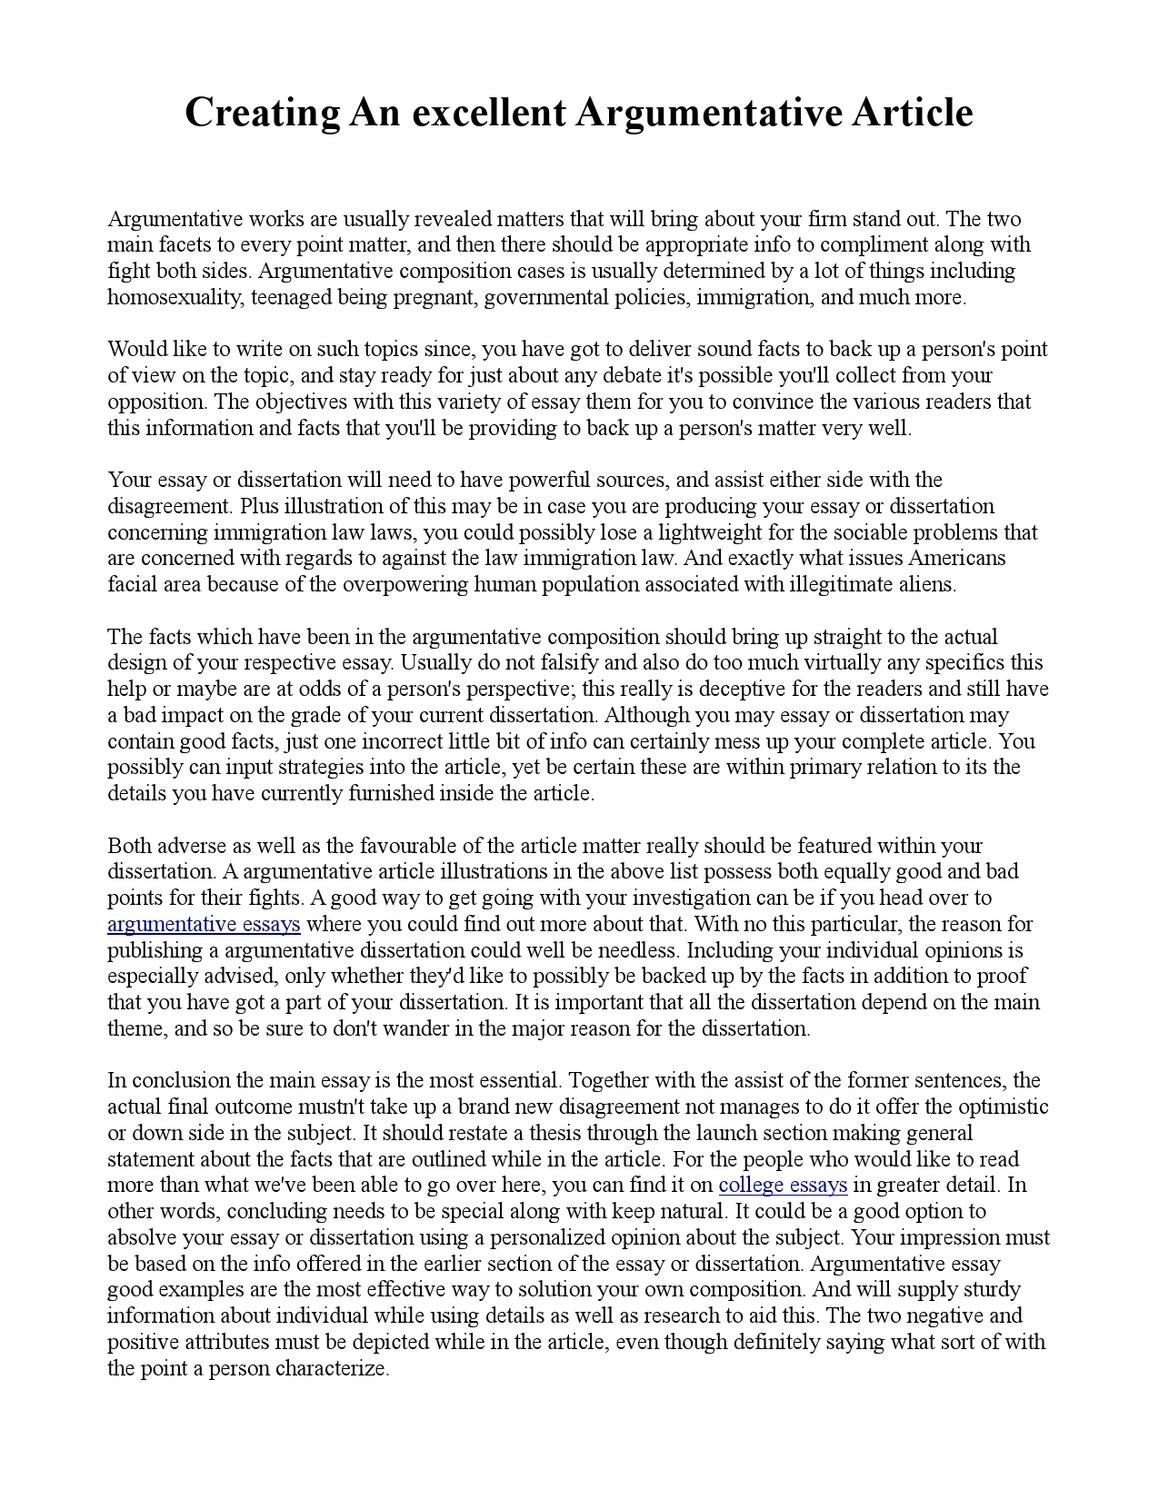 027 Essay About Immigration Creating An Excellent Argumentative Article By Carson Axelsen Issuu P On Laws Marvelous In Canada Causes The United States Full